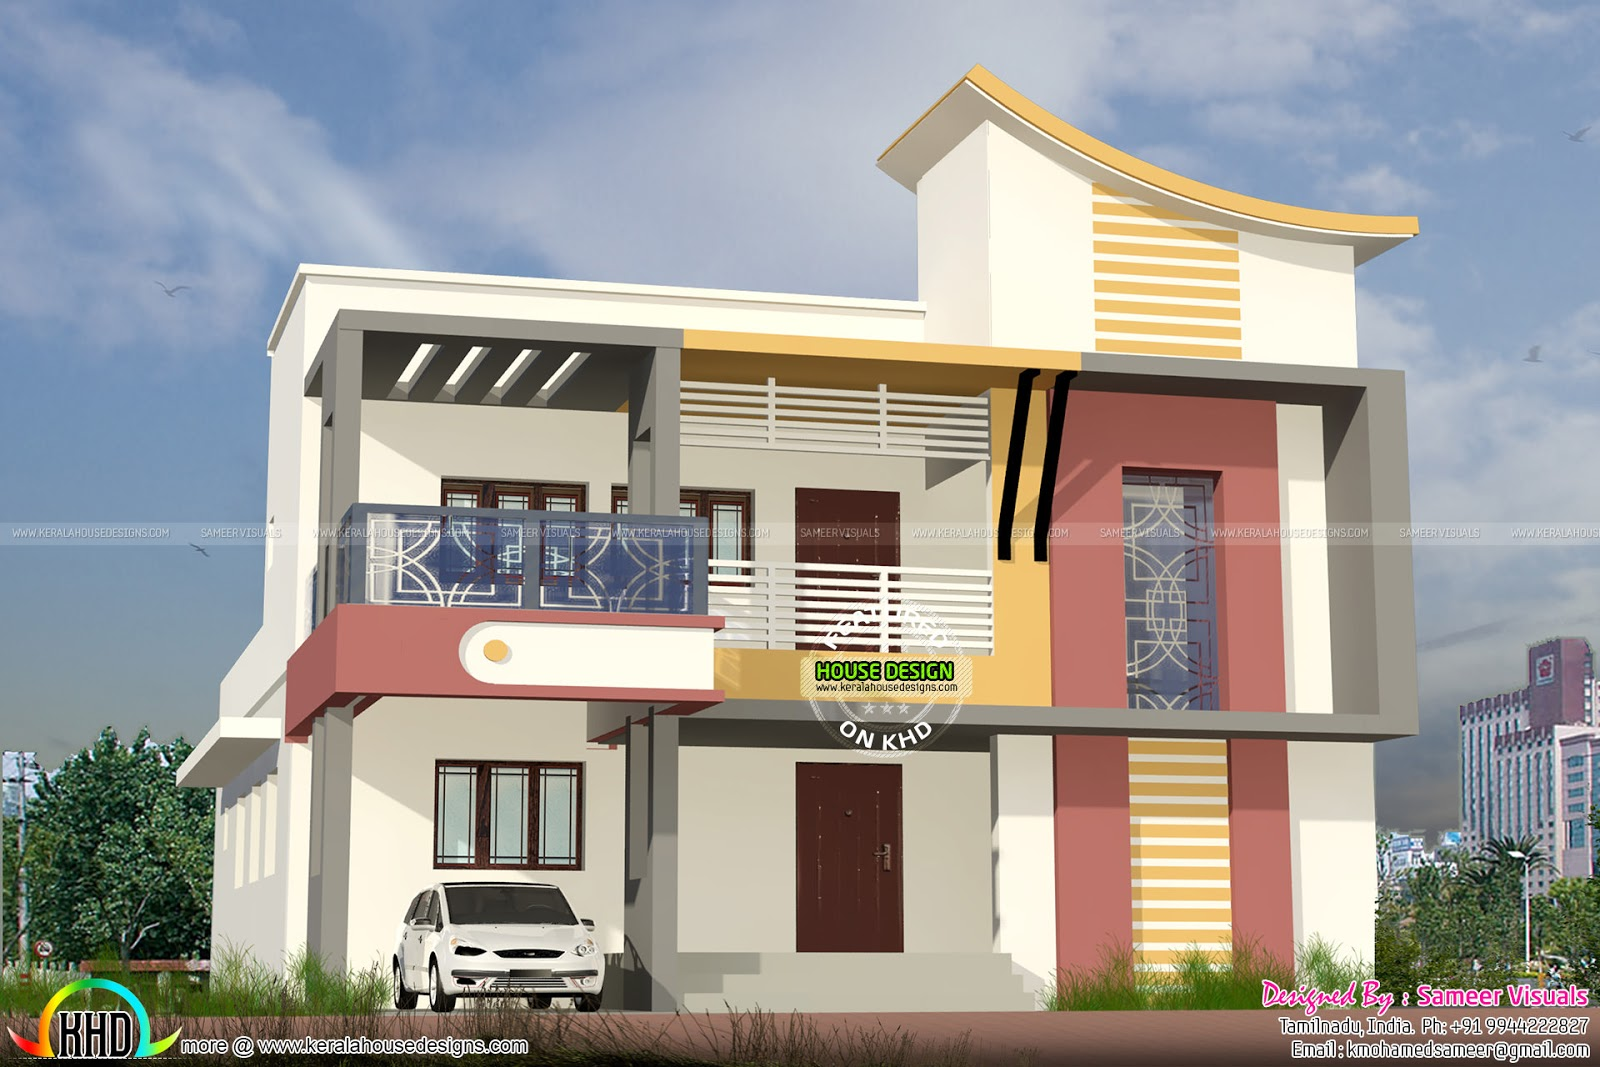 Tamilnadu Model Modern Home Kerala Home Design And Floor Plans